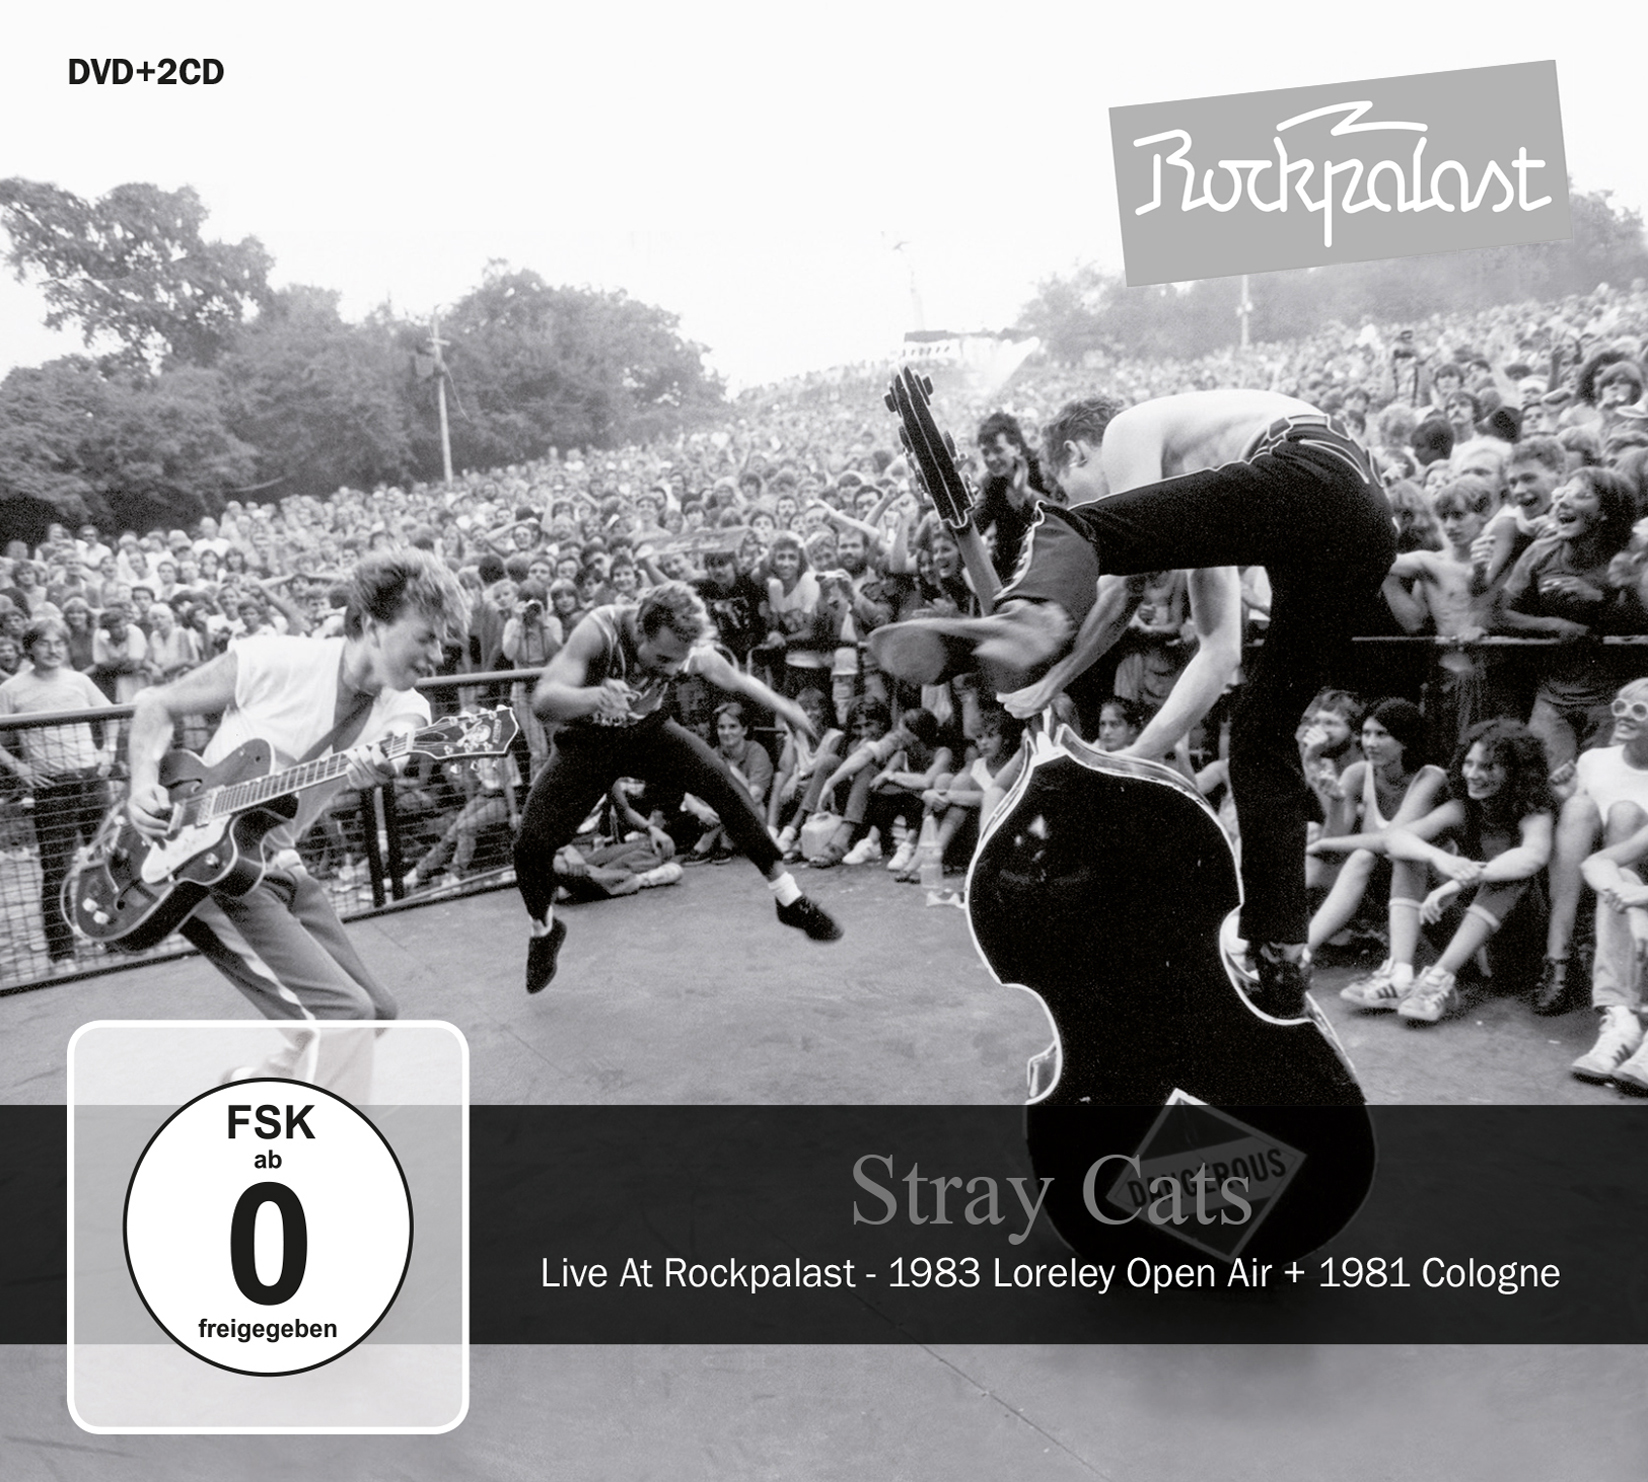 "The Eternal Teenage Tremble of the Rock'n'roll Heart – Stray Cats ""Live at Rockpalast"""